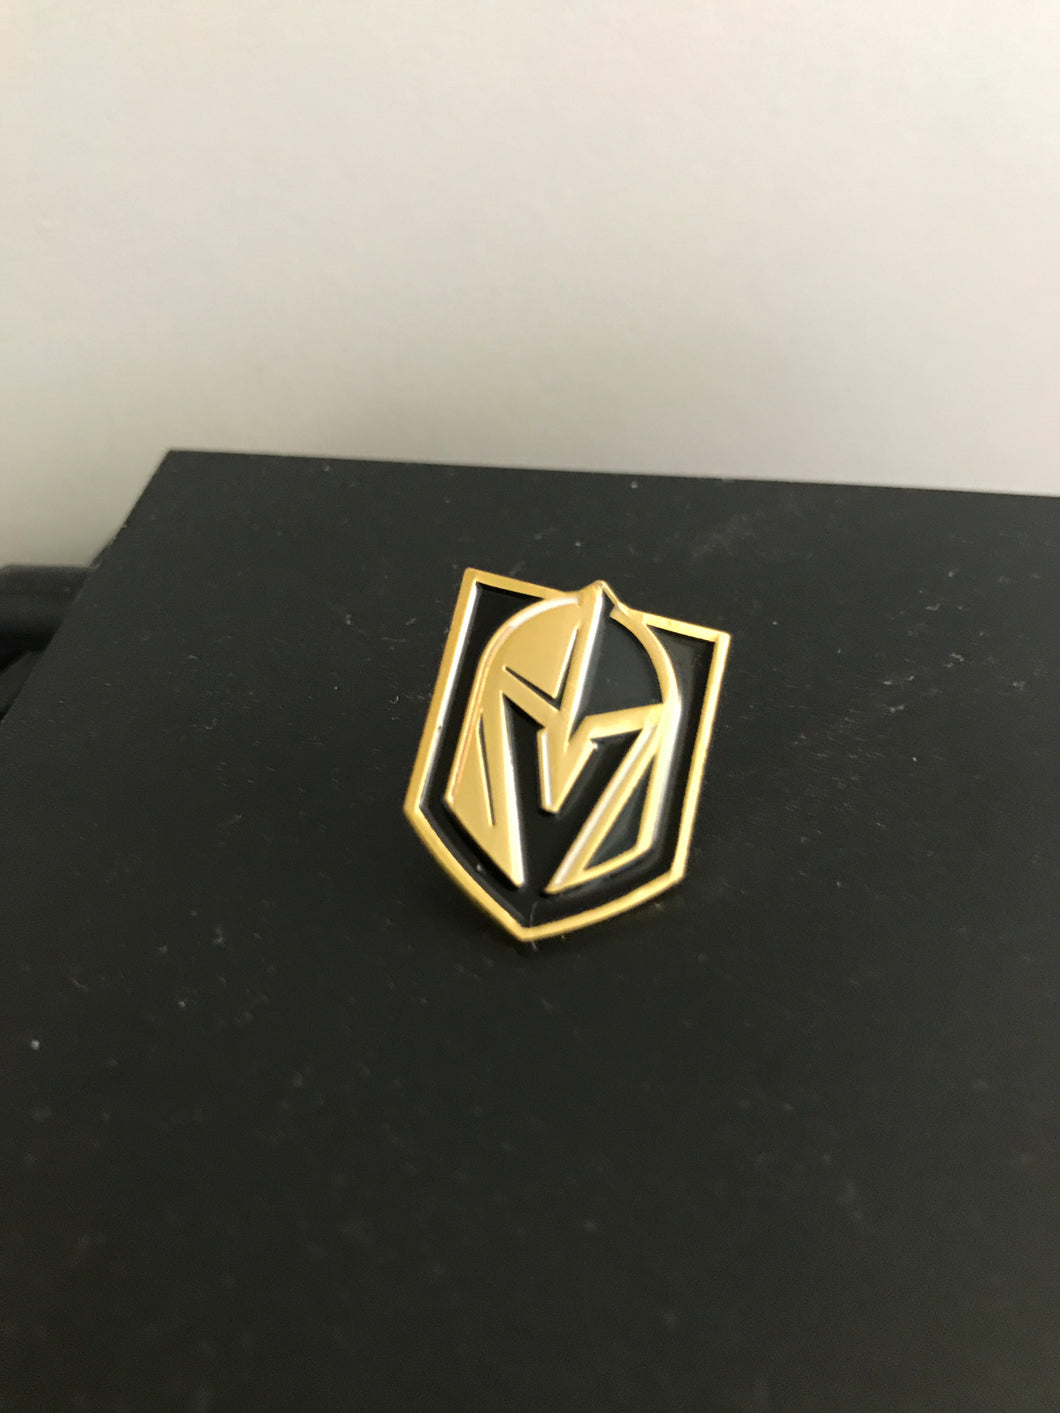 VGK Vegas Golden Knights metal pin